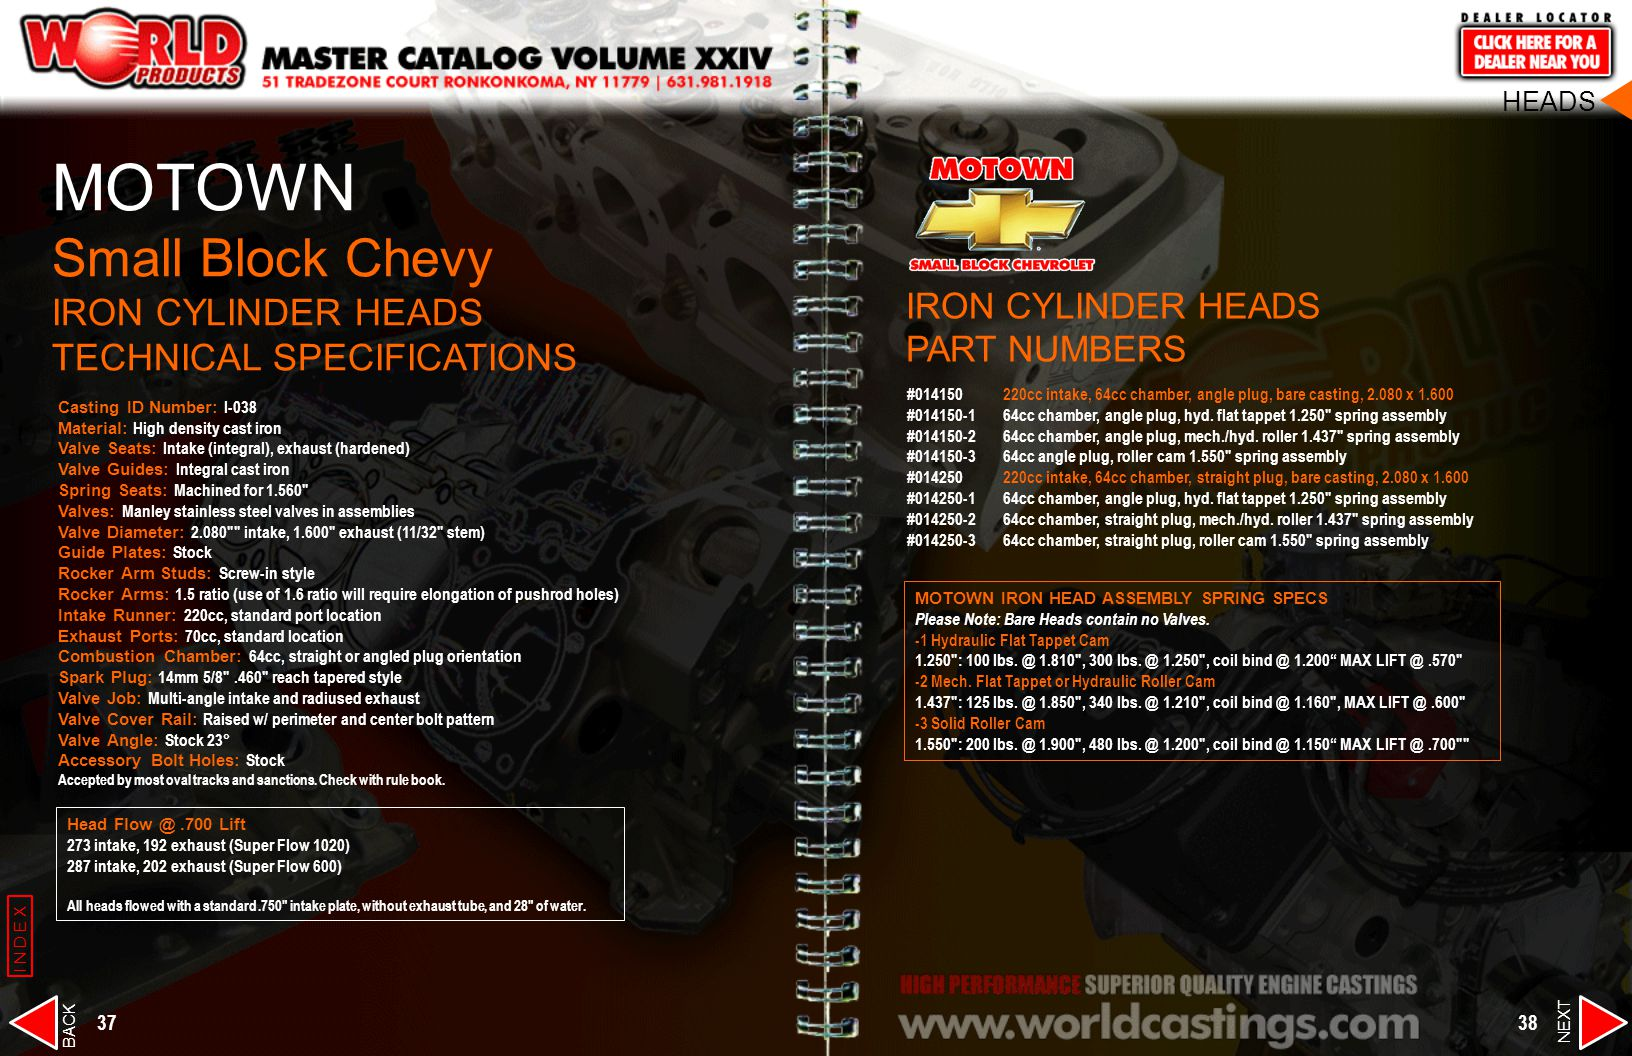 MOTOWN Small Block Chevy IRON CYLINDER HEADS TECHNICAL SPECIFICATIONS